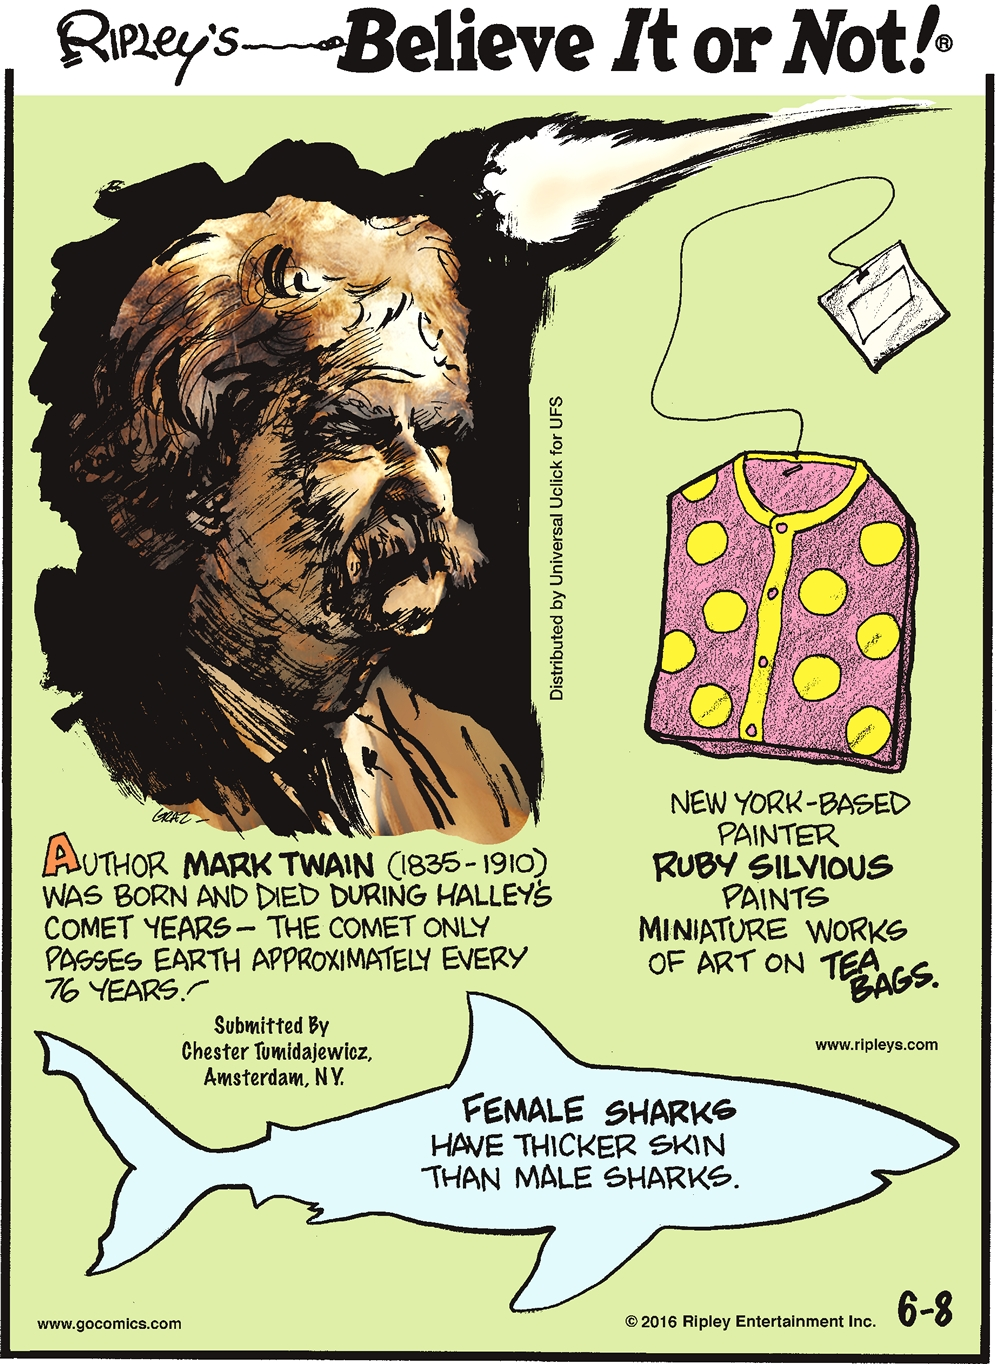 Author Mark Twain (1835-1910) was born and died during Halley's Comet years—the comet only passes Earth approximately every 76 years! Submitted by Chester Tumidajewicz, Amsterdam, NY. -------------------- New York-based painter Ruby Silvious paints miniature works of art on tea bags. -------------------- Female sharks have thicker skin than male sharks.